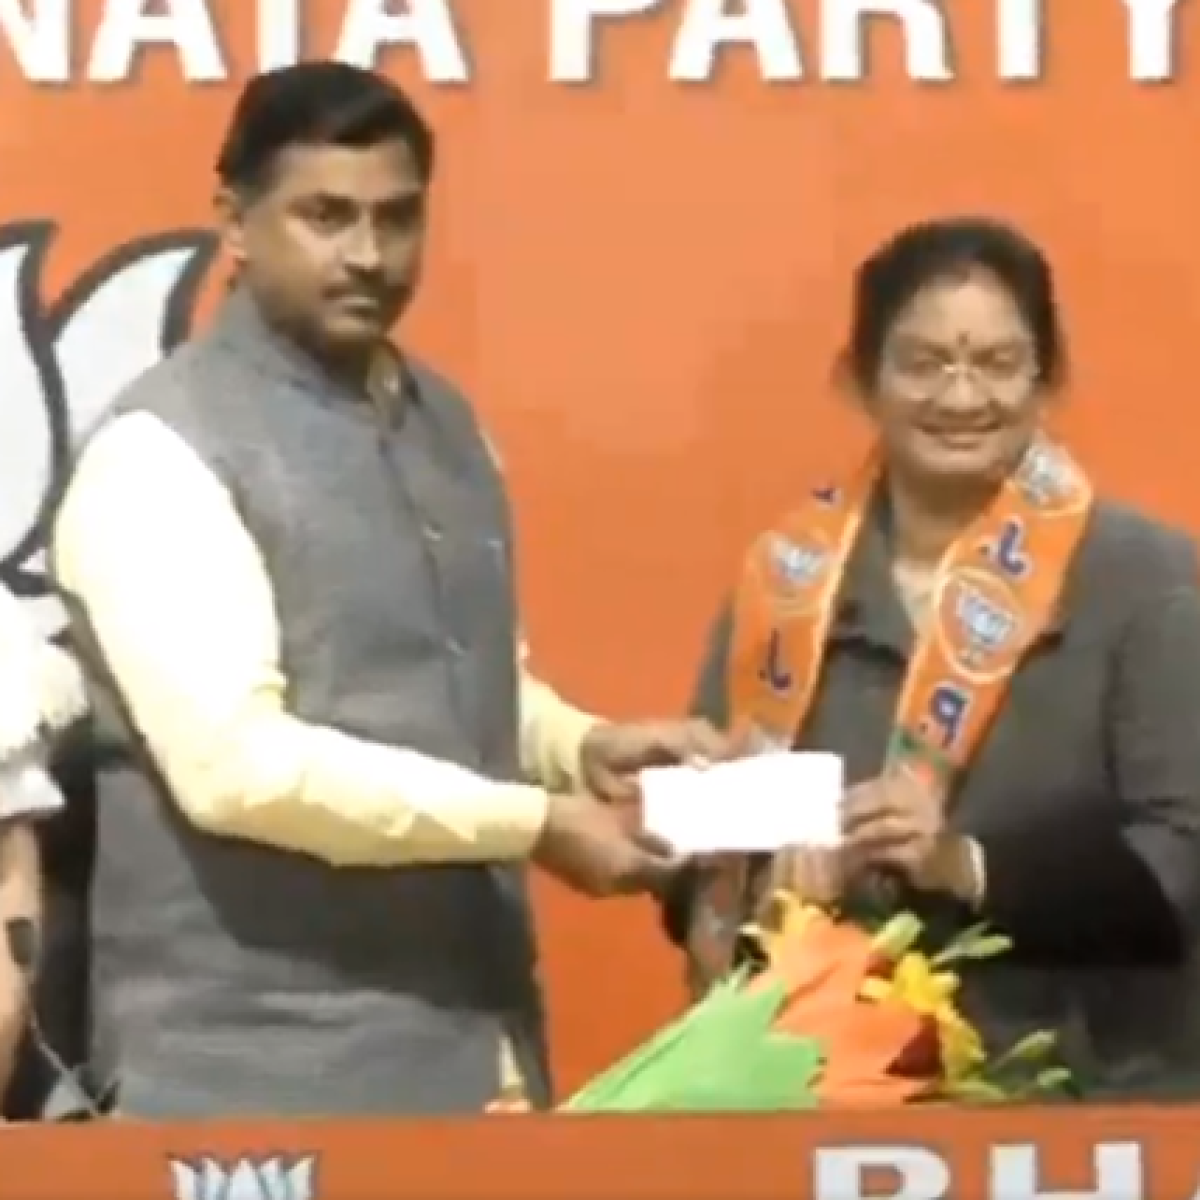 Ahead of Tamil Nadu Assembly polls, expelled AIADMK MP Sasikala Pushpa joins BJP